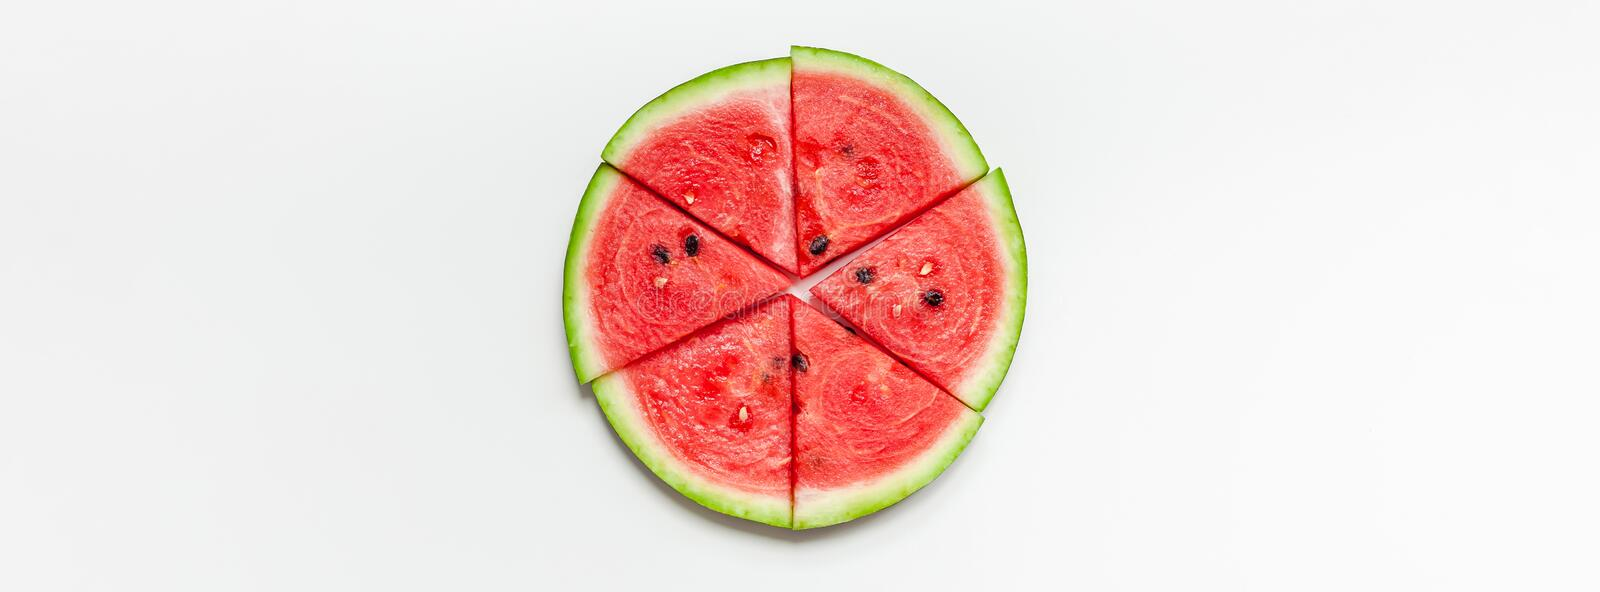 Fresh watermelon slices on white background. Creative scandinavian style flat lay top view of fresh watermelon slices on white table background copy space royalty free stock photo